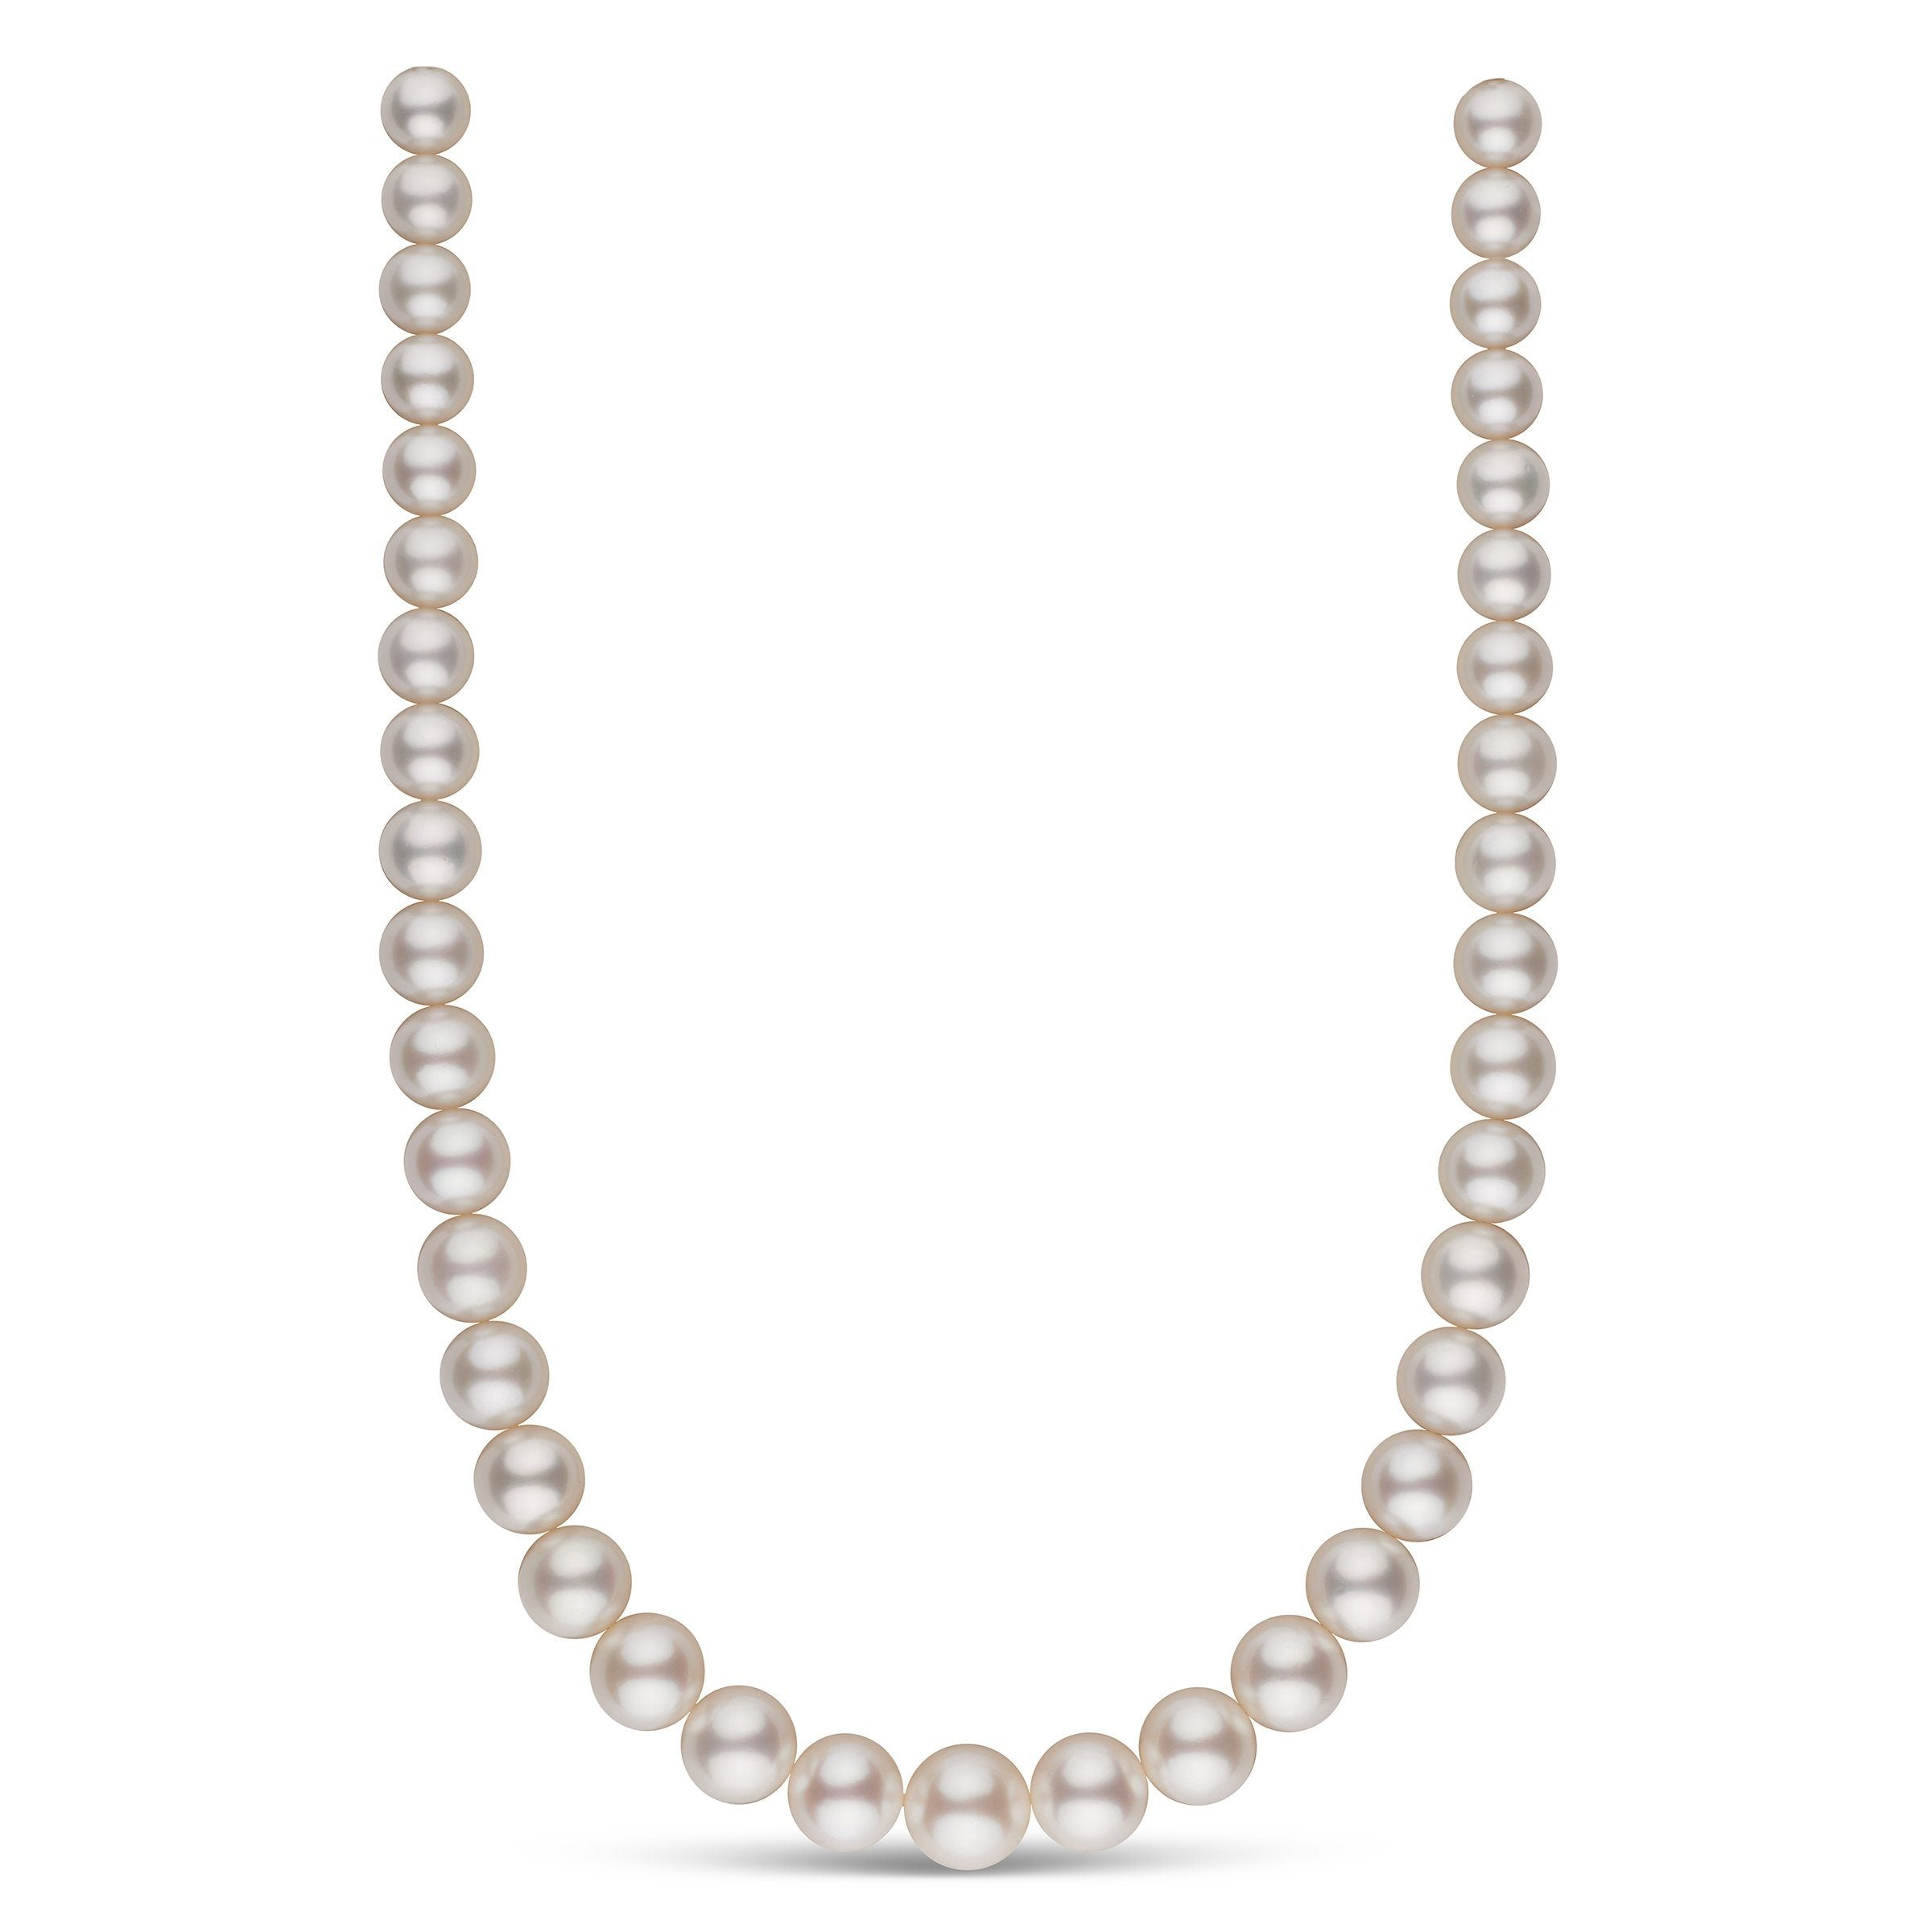 10.0-13.8 mm AA+/AAA White South Sea Round Pearl Necklace